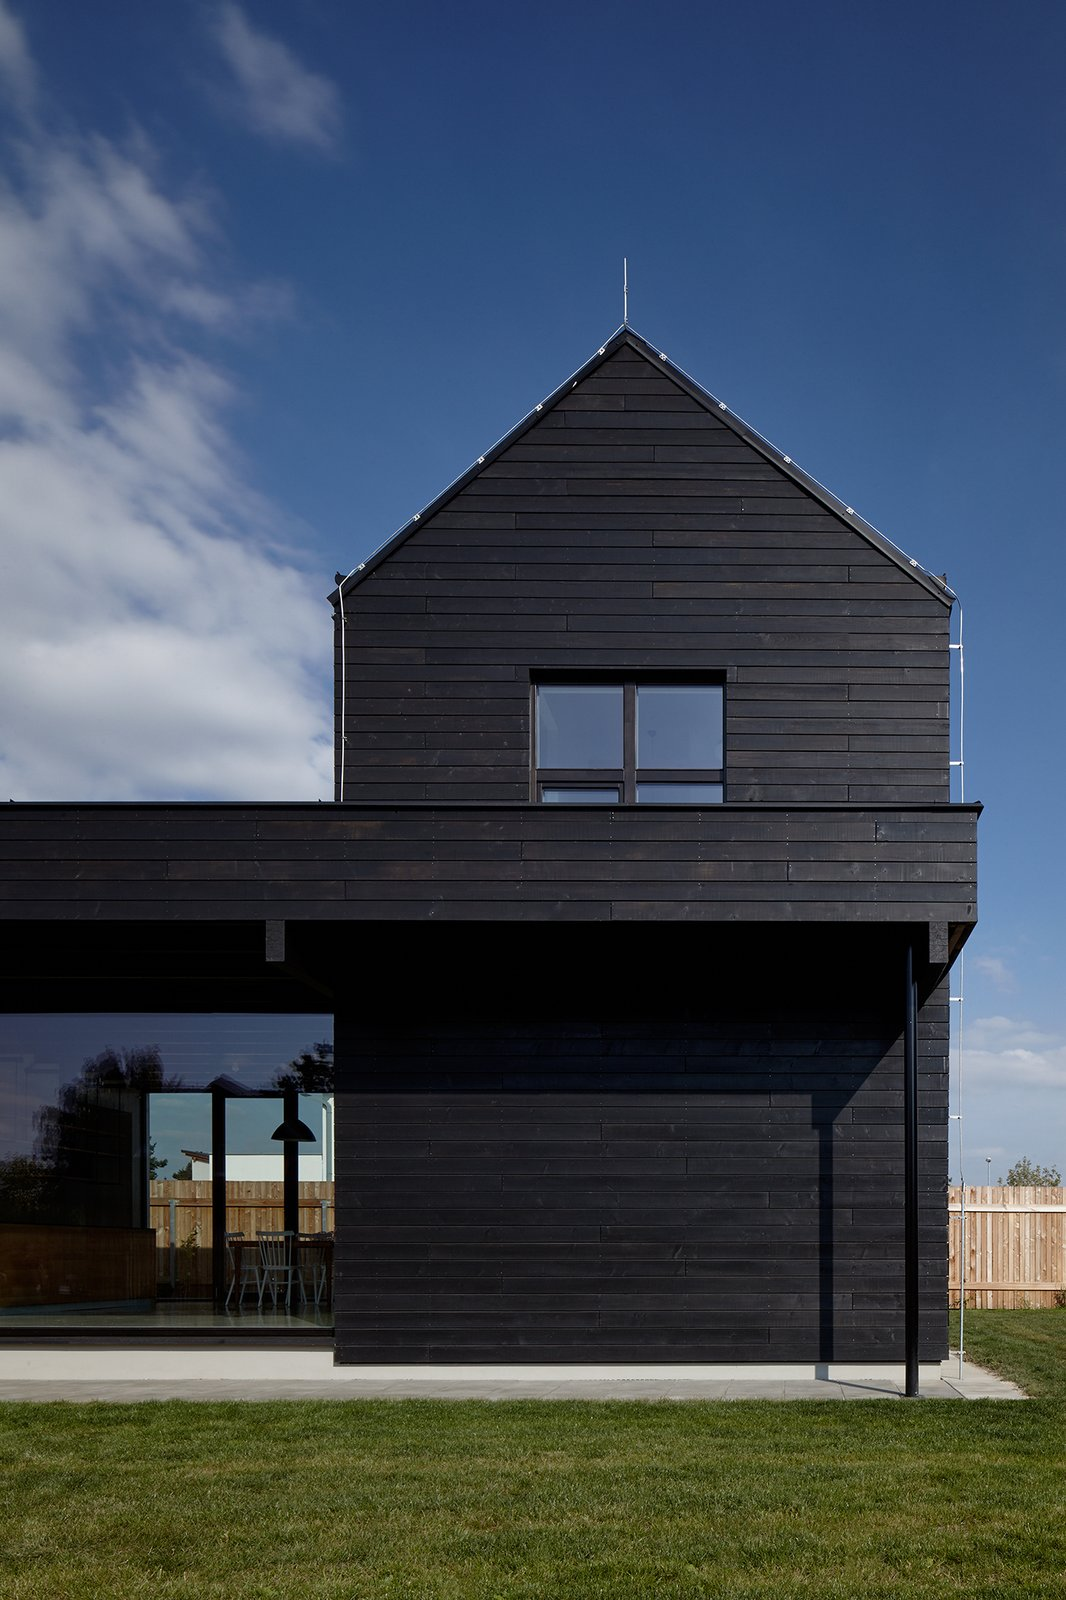 The Fence House by BoysPlayNice Photography & Concept